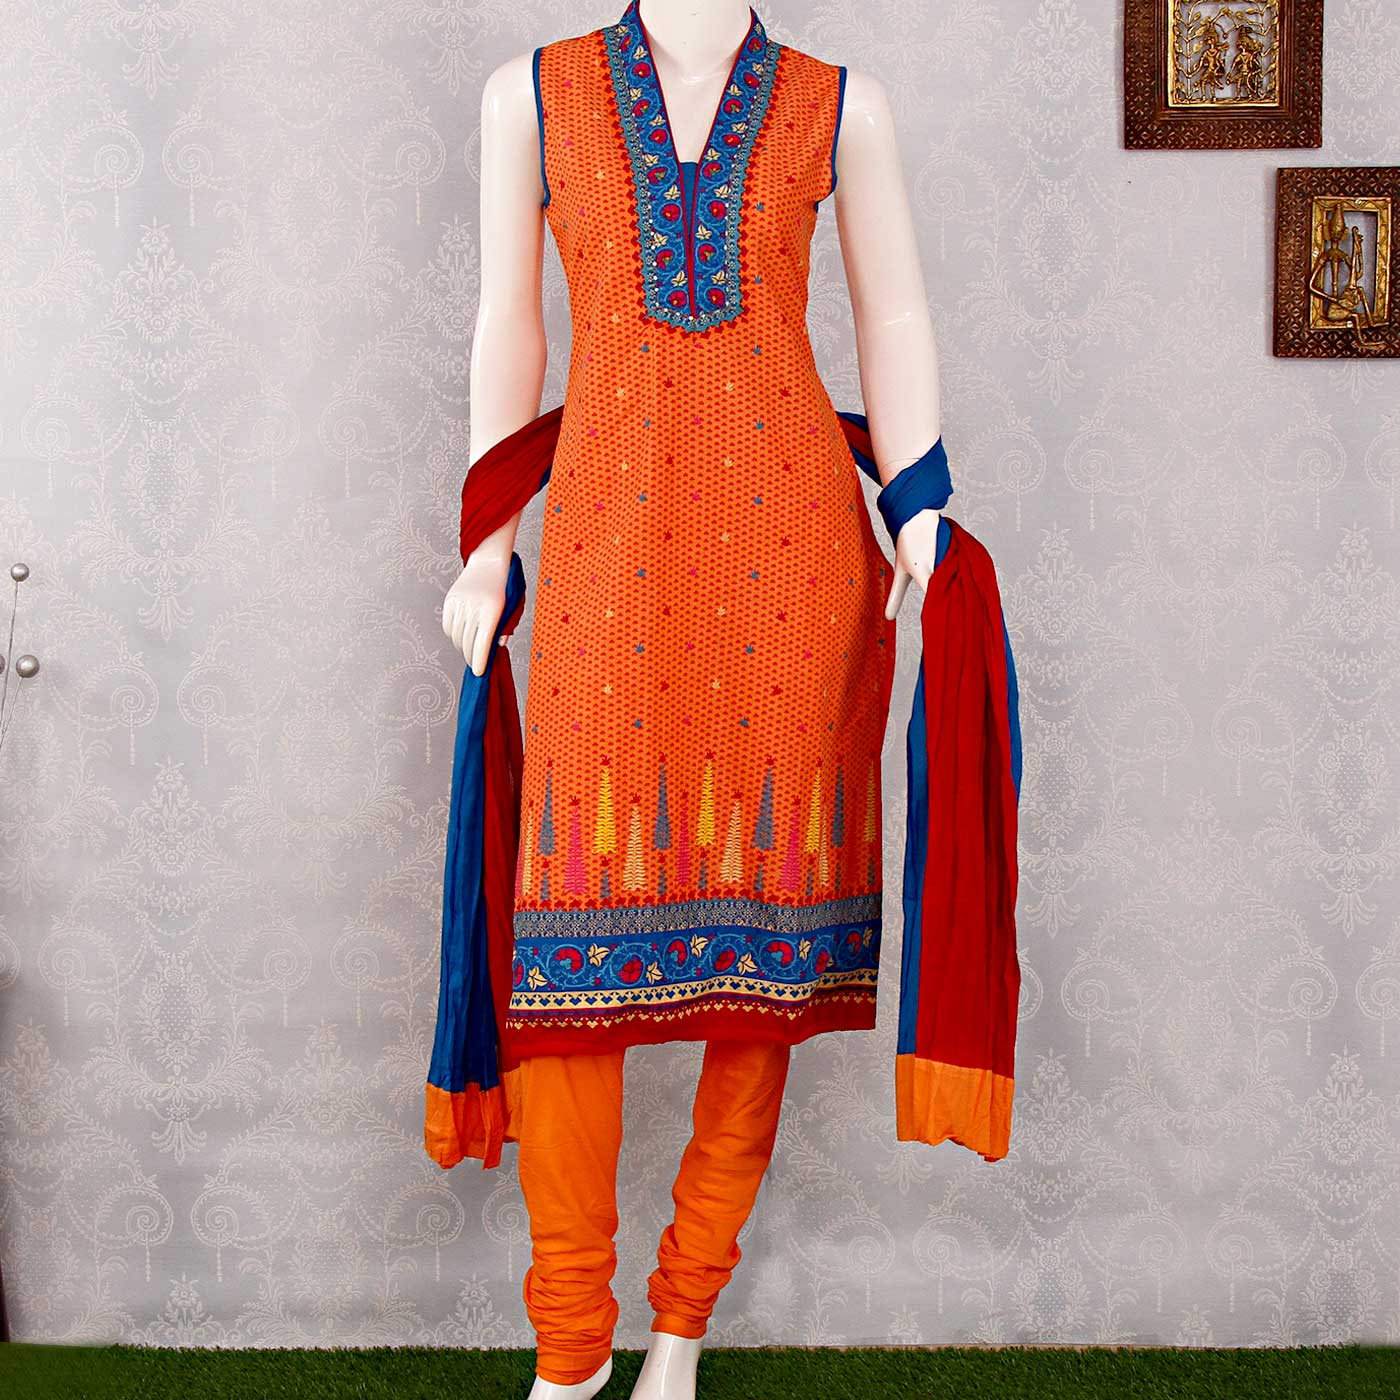 Biba Printed Cotton Sleeveless Orange Kurta Churidar With Dupatta